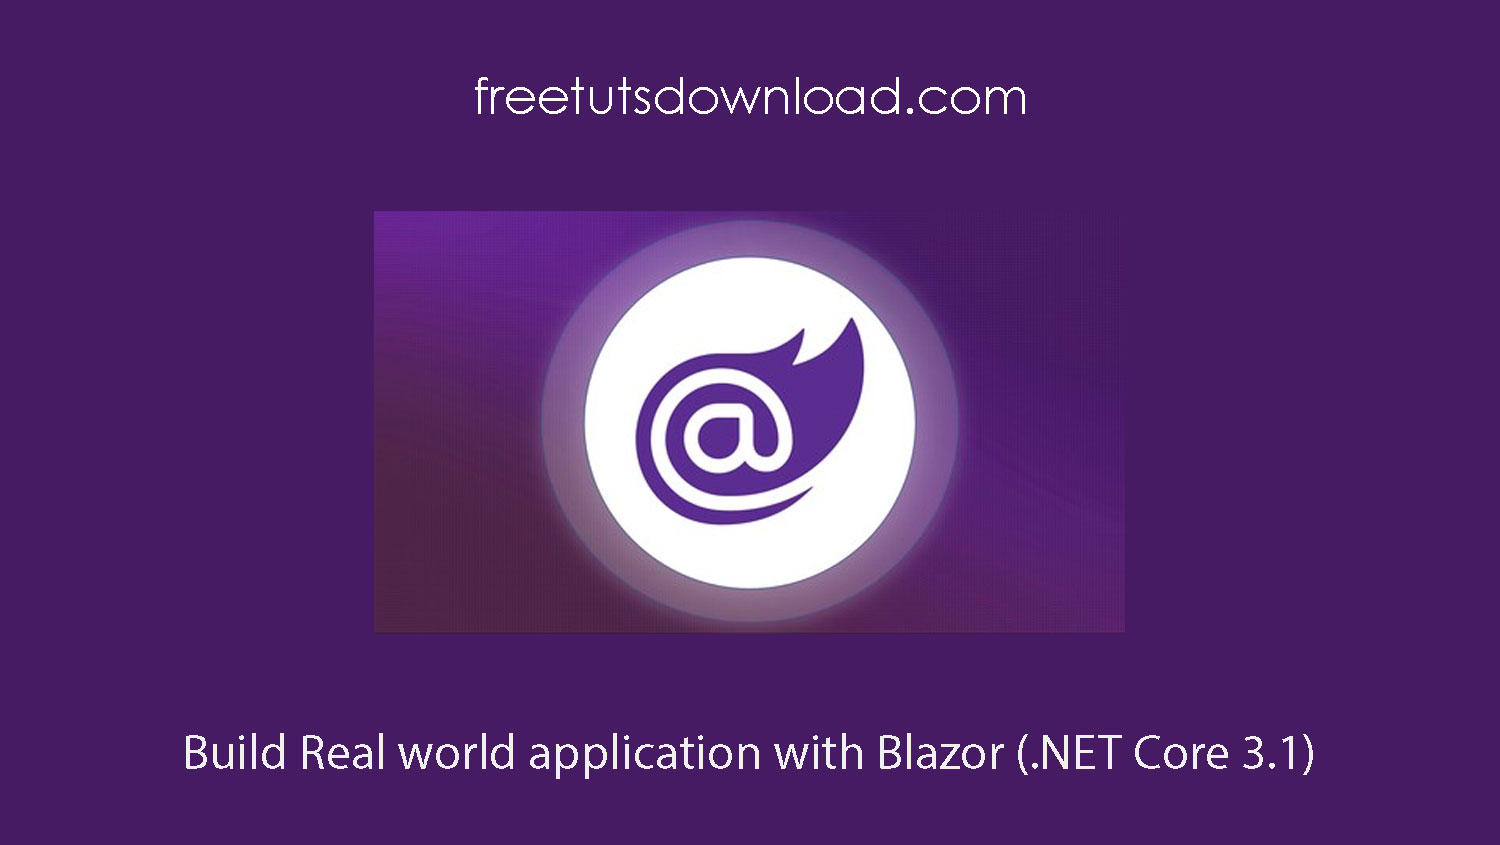 Build Real world application with Blazor (.NET Core 3.1)